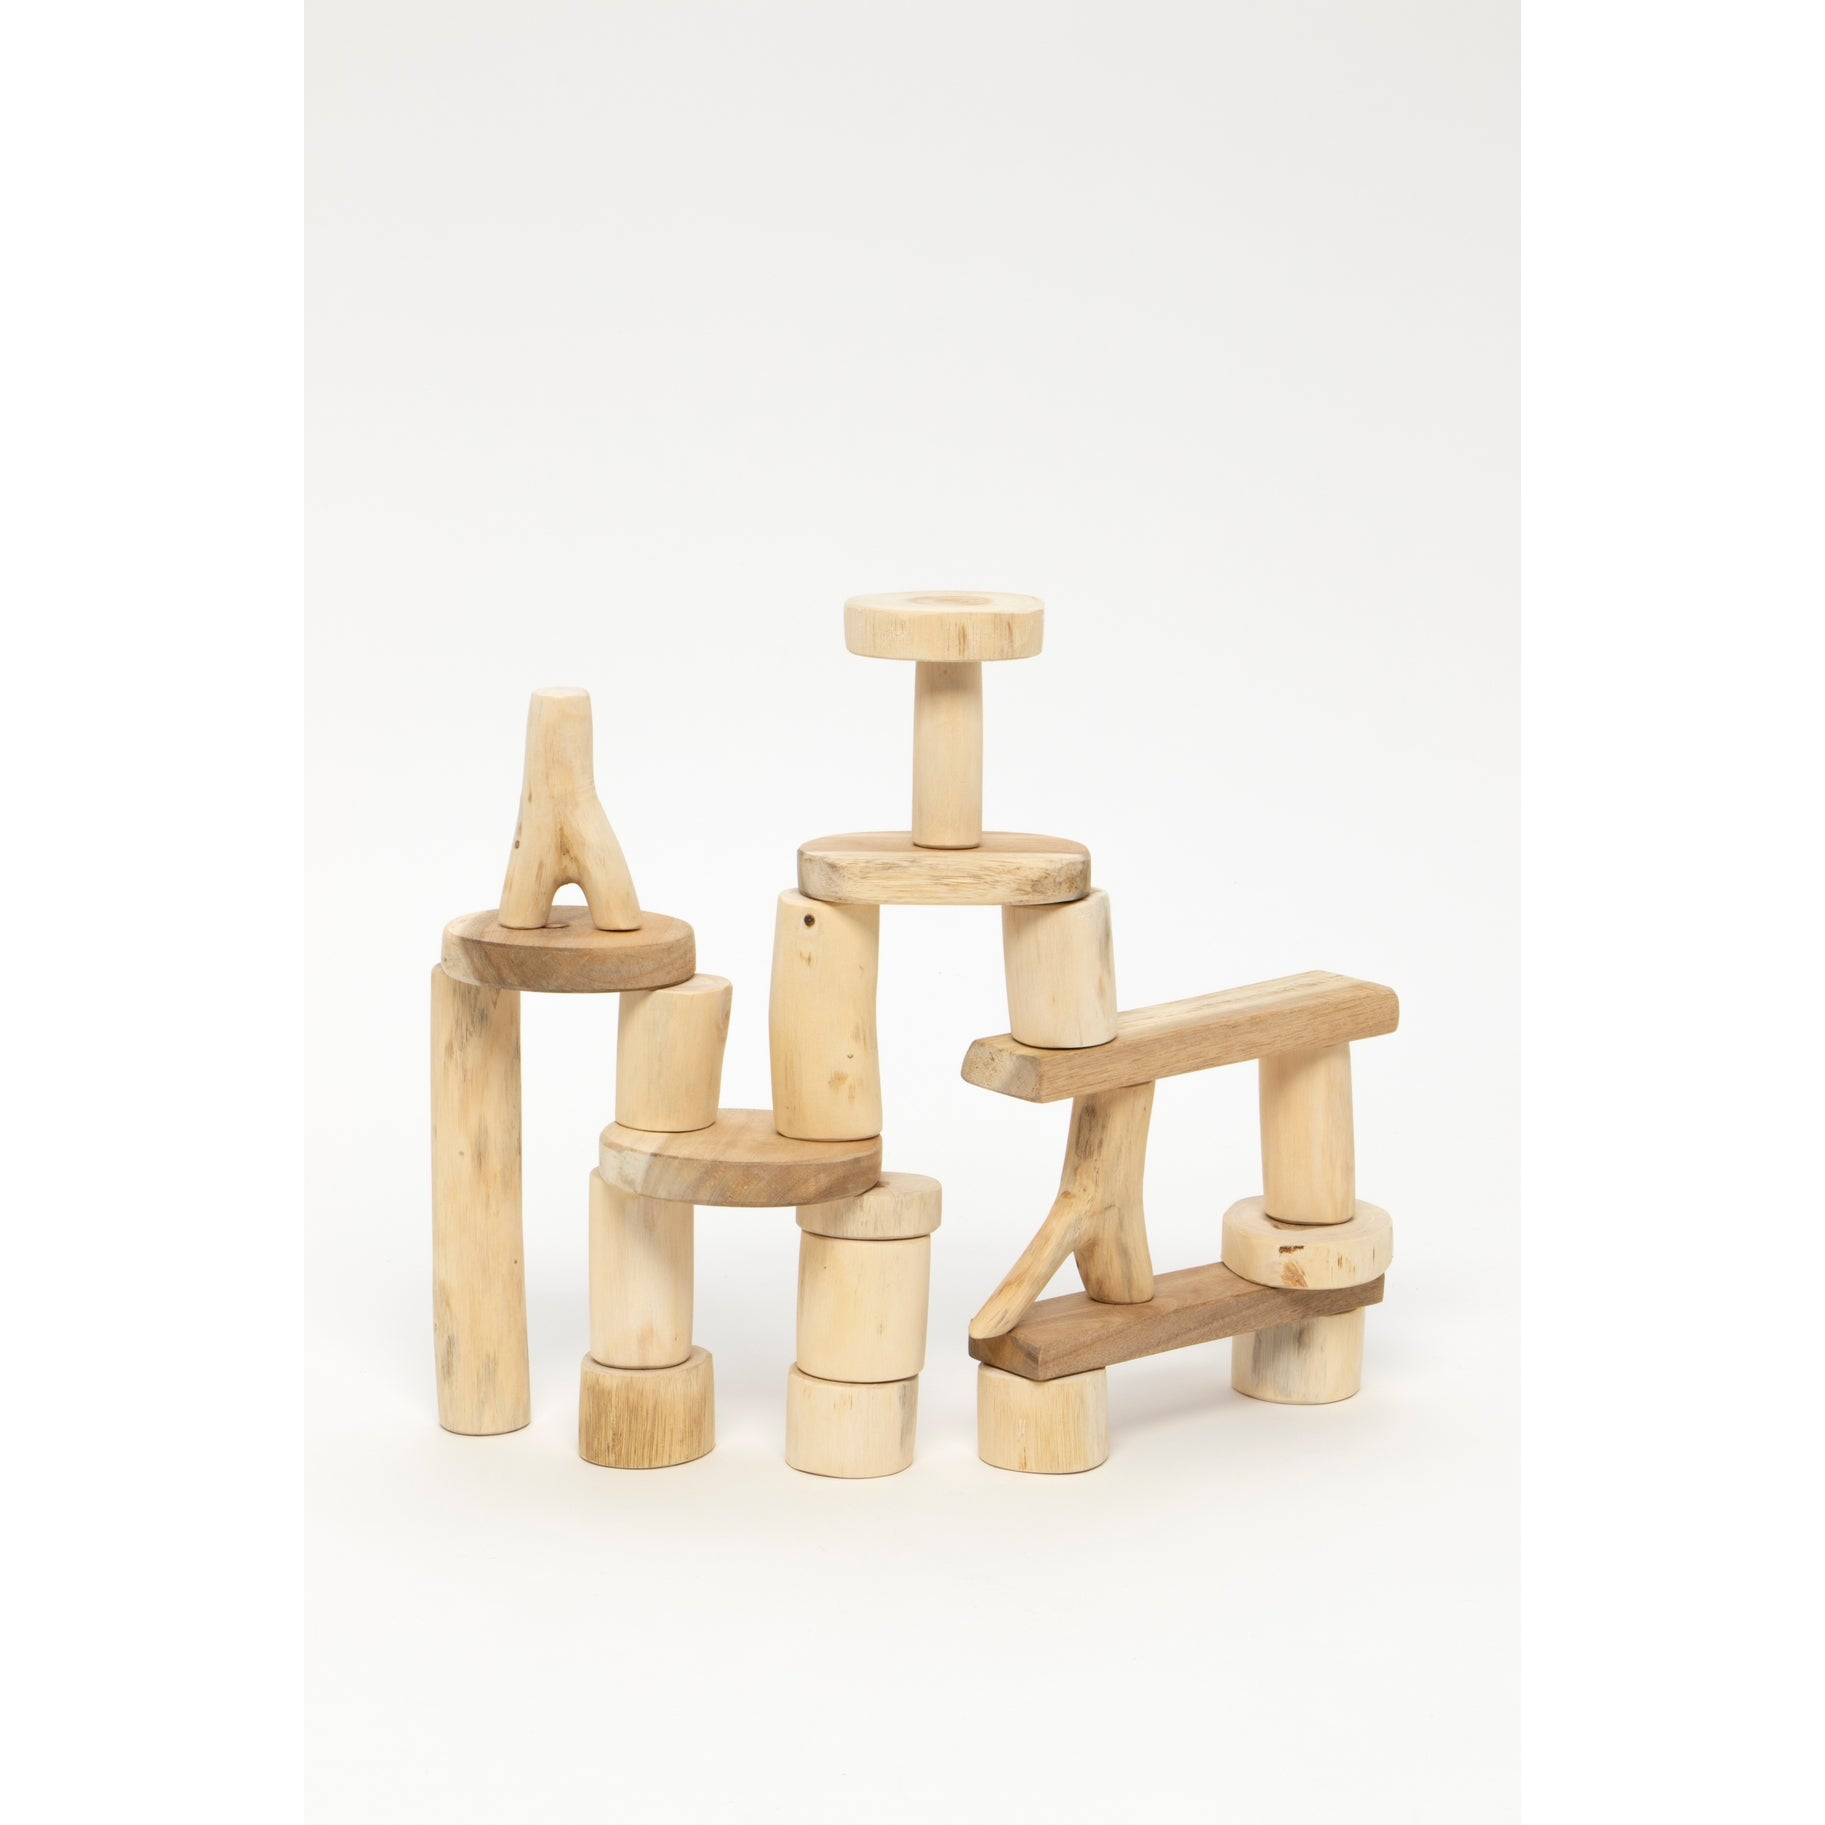 Sustainably made tree blocks for building imagination and fun. Made from reclaimed, recycled and sustainably harvested wood in Vietnam in ethical working conditions. This set of classic building blocks has 21 pieces and is the perfect open-ended toy.